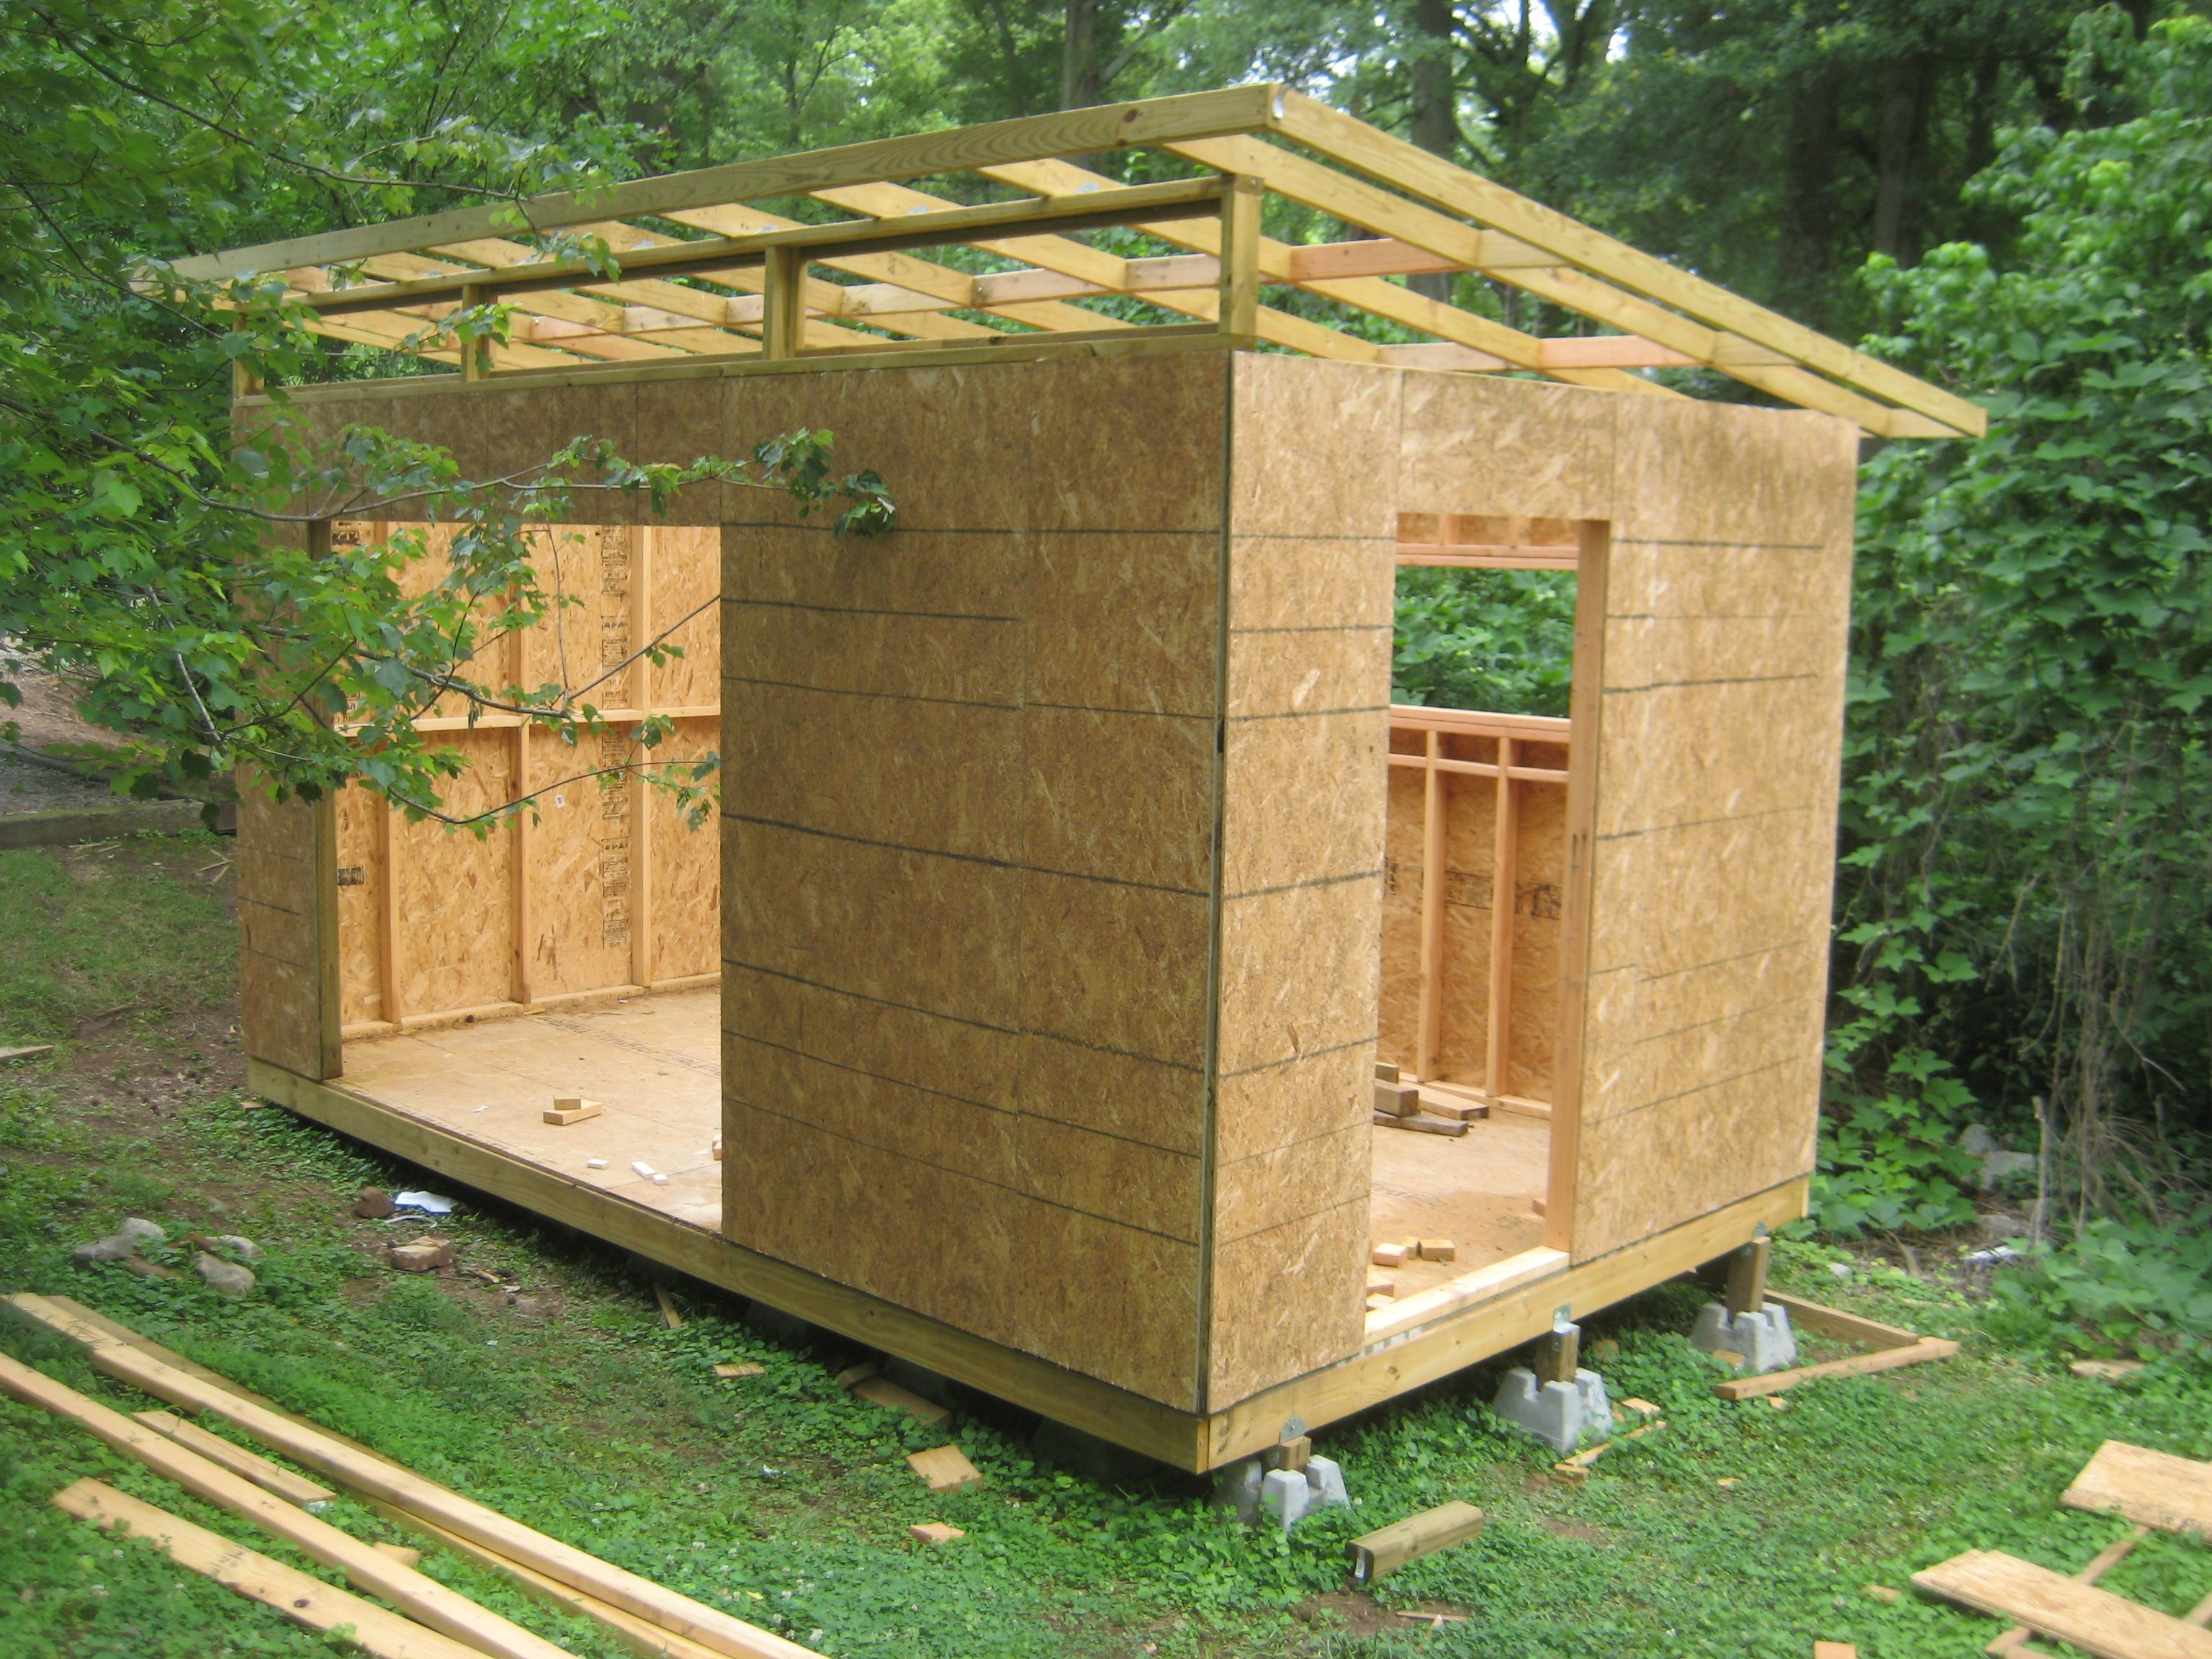 as well Best 25  Shed plans ideas on Pinterest   Small shed plans  Diy further  moreover slant roof shed plans download   diy projects   Pinterest also  furthermore 108 DIY Shed Plans with Detailed Step by Step Tutorials  Free also 422 best Shed Plans Diy images on Pinterest   Diy storage shed besides Outdoor Storage Shed Plans   Home Outdoor Decoration as well 201 best DIY Shed Plans images on Pinterest   Diy shed plans as well Best 25  Shed plans 8x10 ideas on Pinterest likewise Best 25  8x8 shed ideas on Pinterest   Utility sheds  6x8 shed and. on x shed doors plans myoutdoorplans free woodworking 8x8 outhouse building